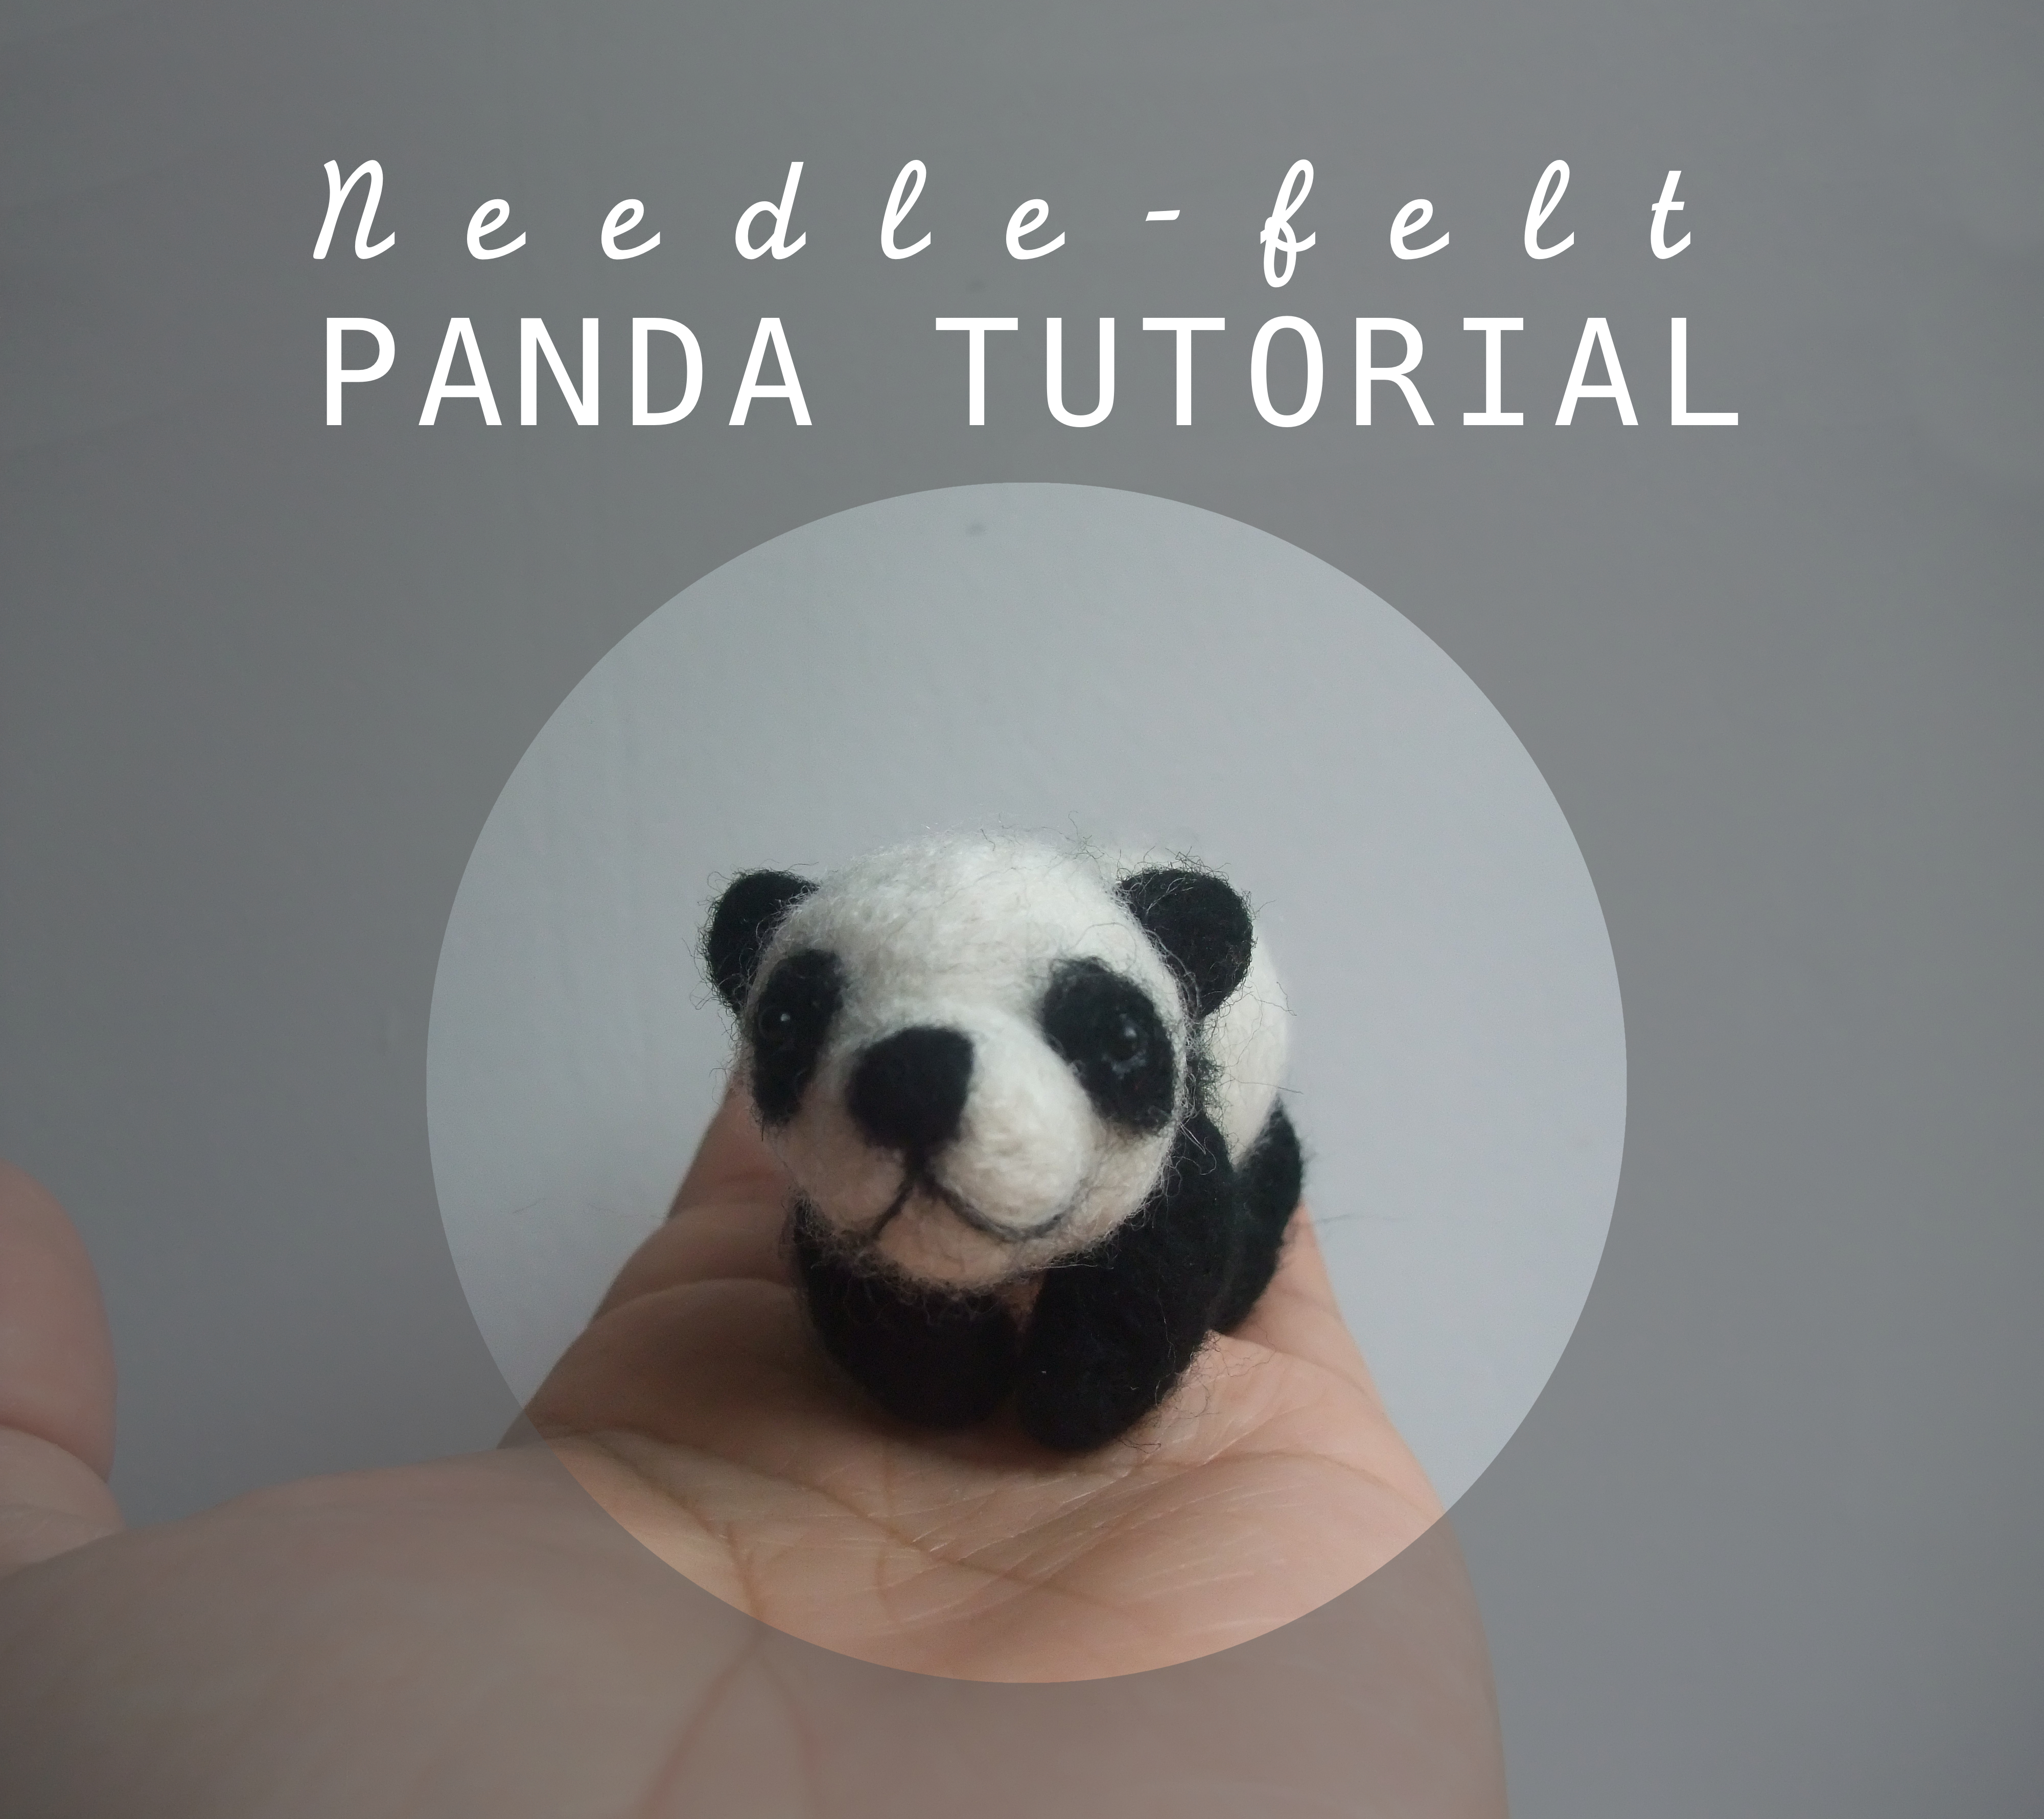 Meet the Maker: Tina Chi Home (and learn how to make a needle-felt panda)